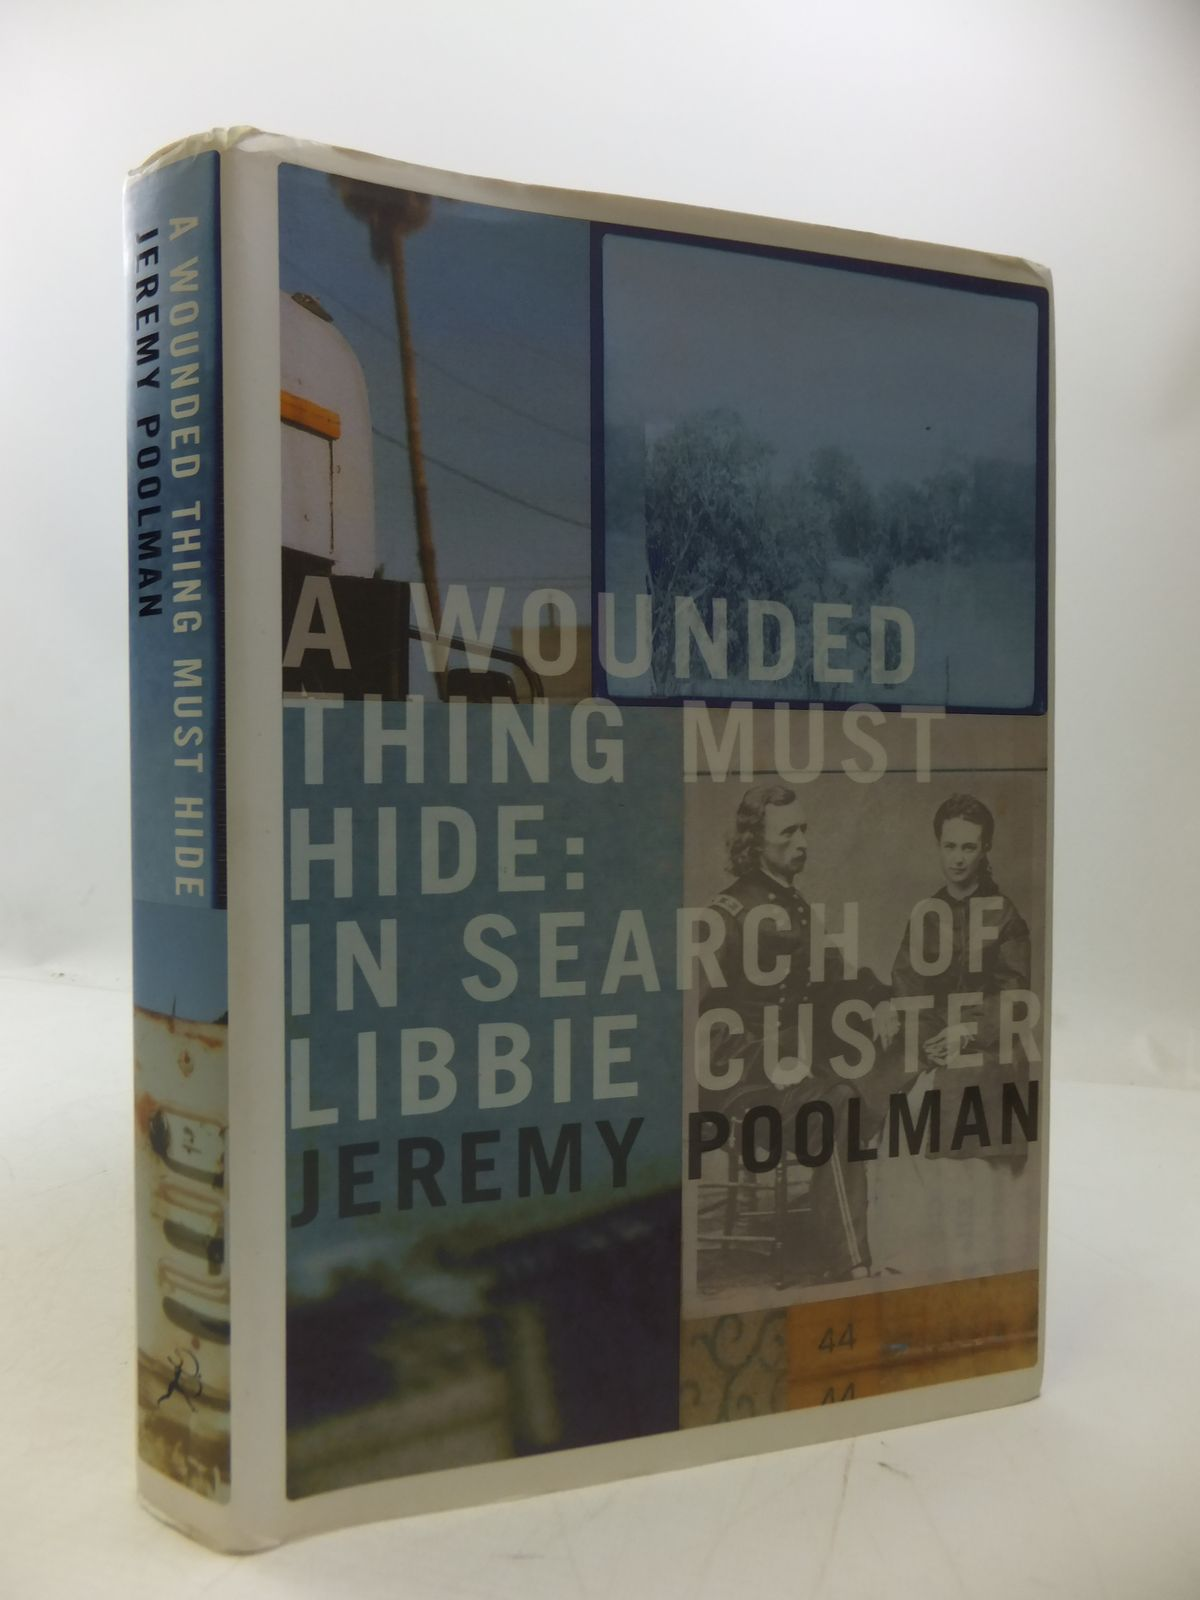 Photo of A WOUNDED THING MUST HIDE: IN SEARCH OF LIBBIE CUSTER written by Poolman, Jeremy published by Bloomsbury (STOCK CODE: 1807992)  for sale by Stella & Rose's Books